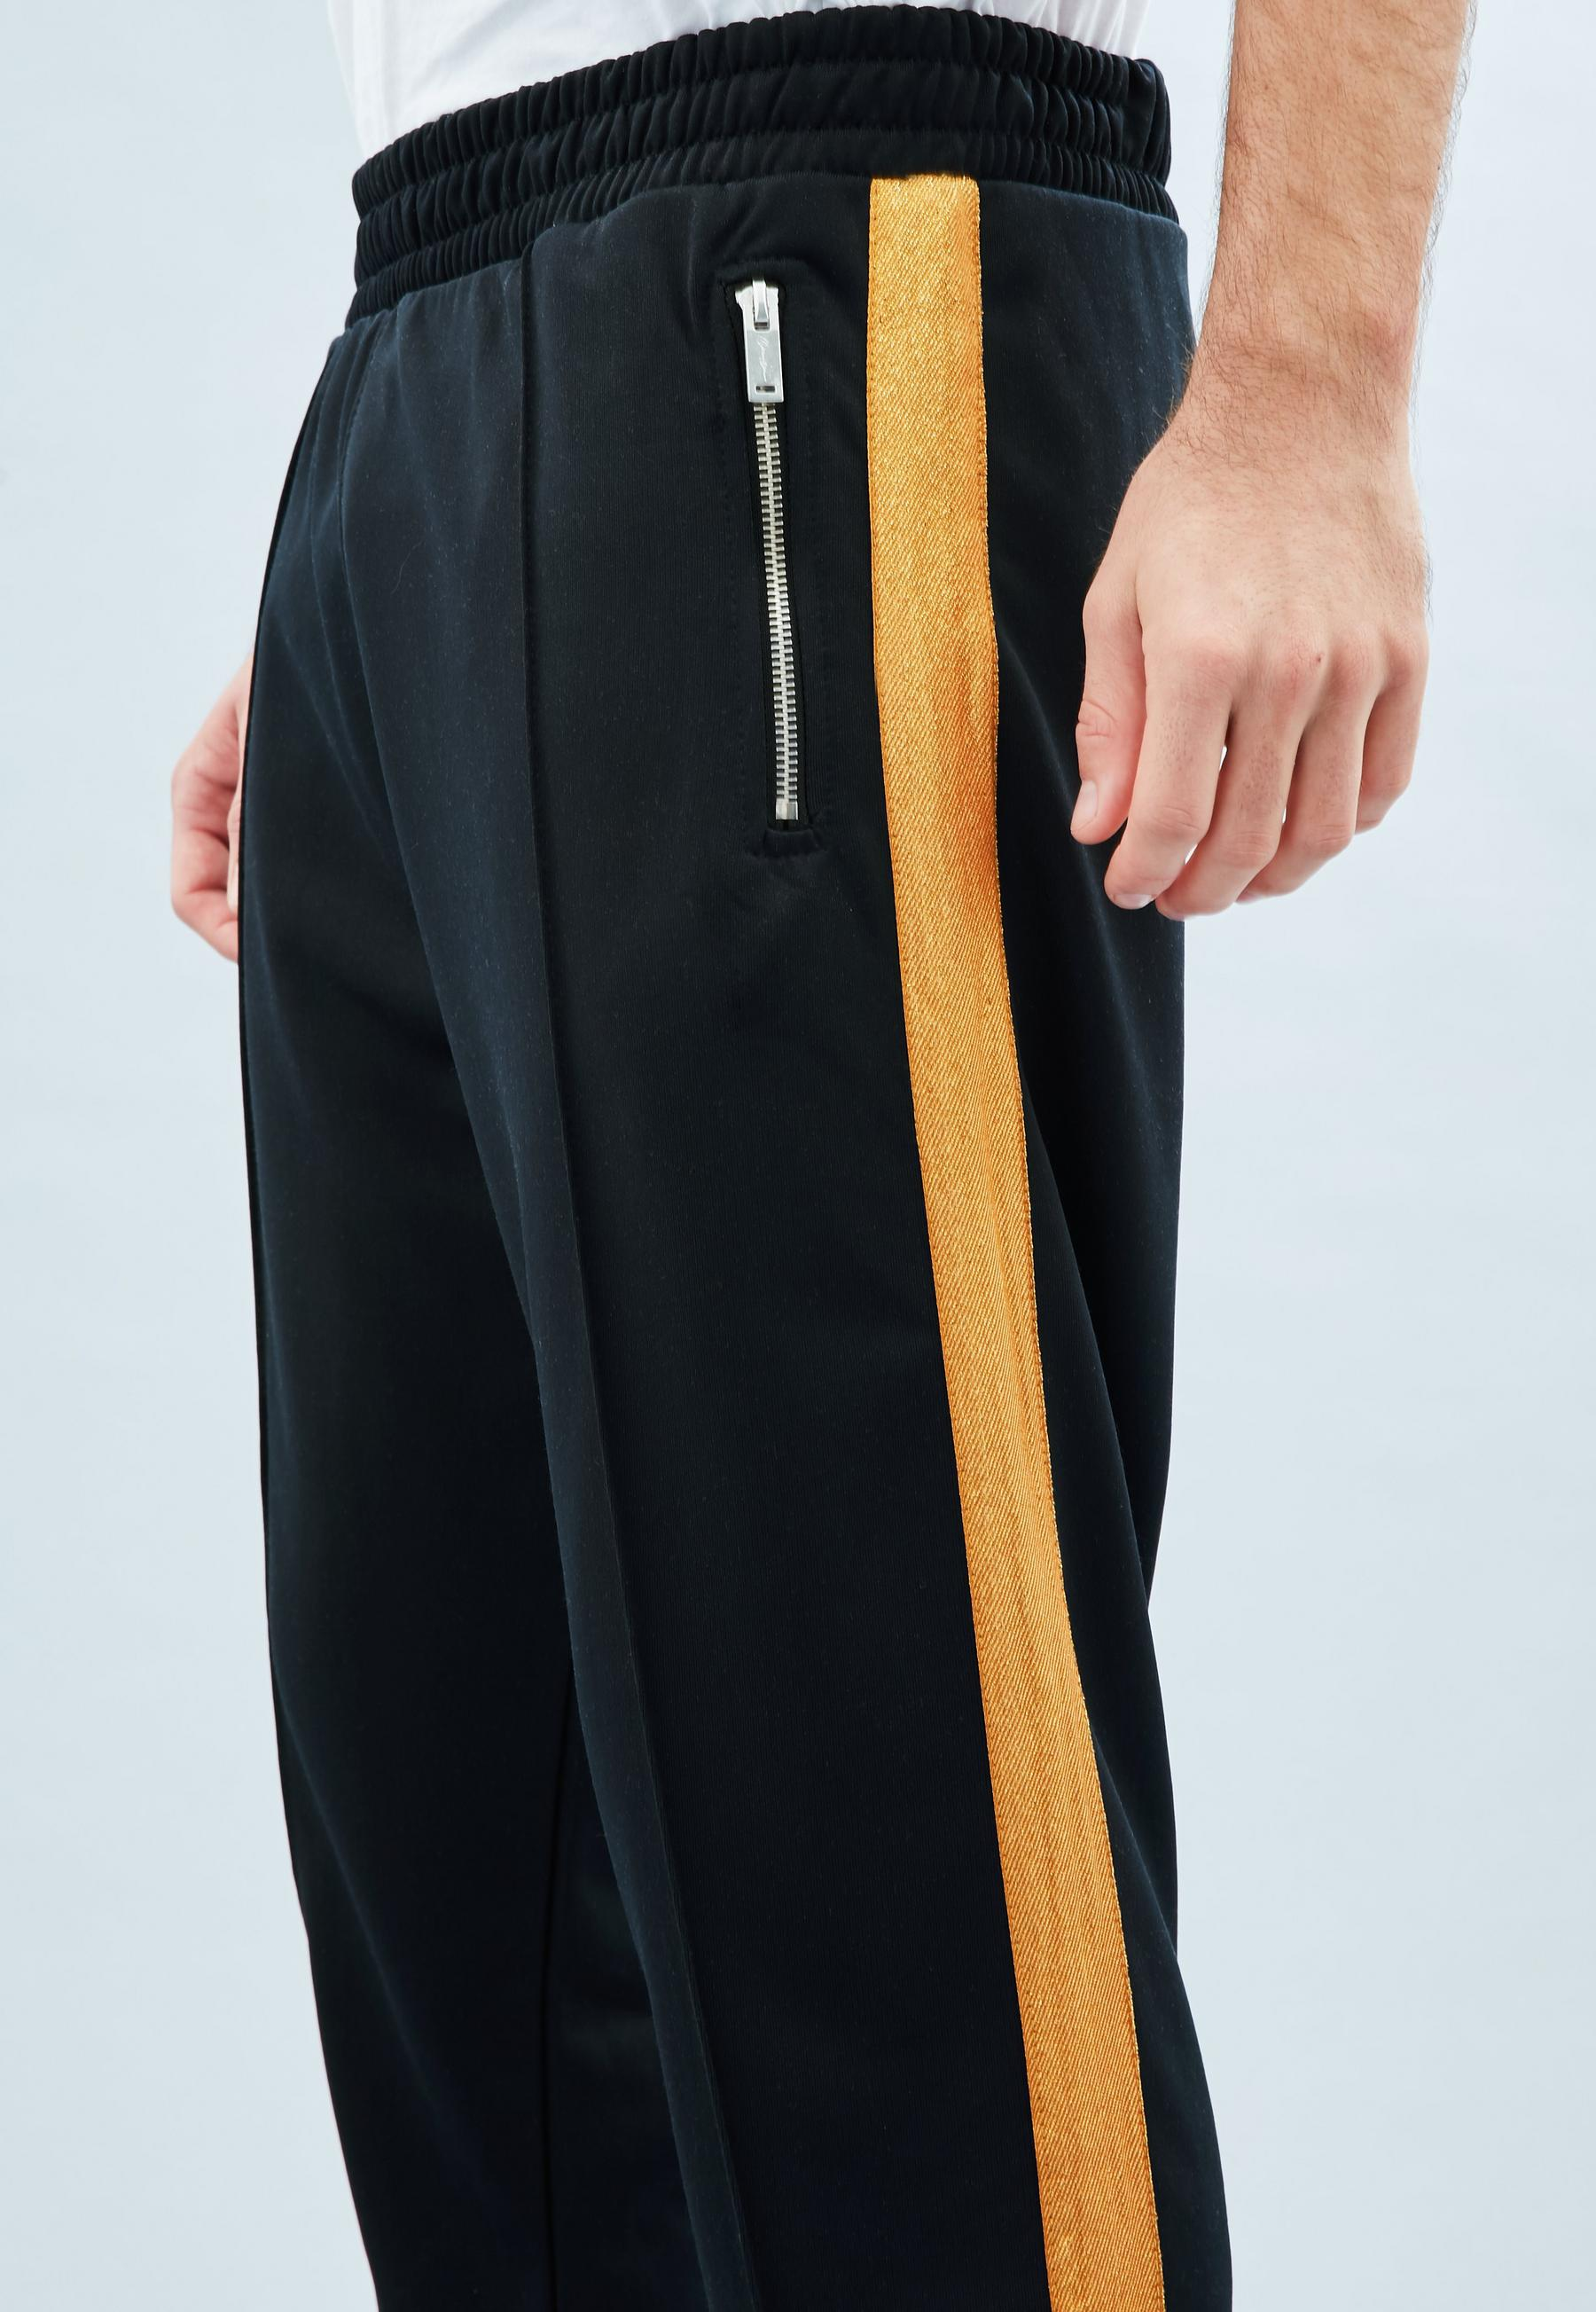 a77dbd62f181 ... Navy Tricot Knit Gold Stripe Tracksuit Bottoms for Men - Lyst. View  fullscreen